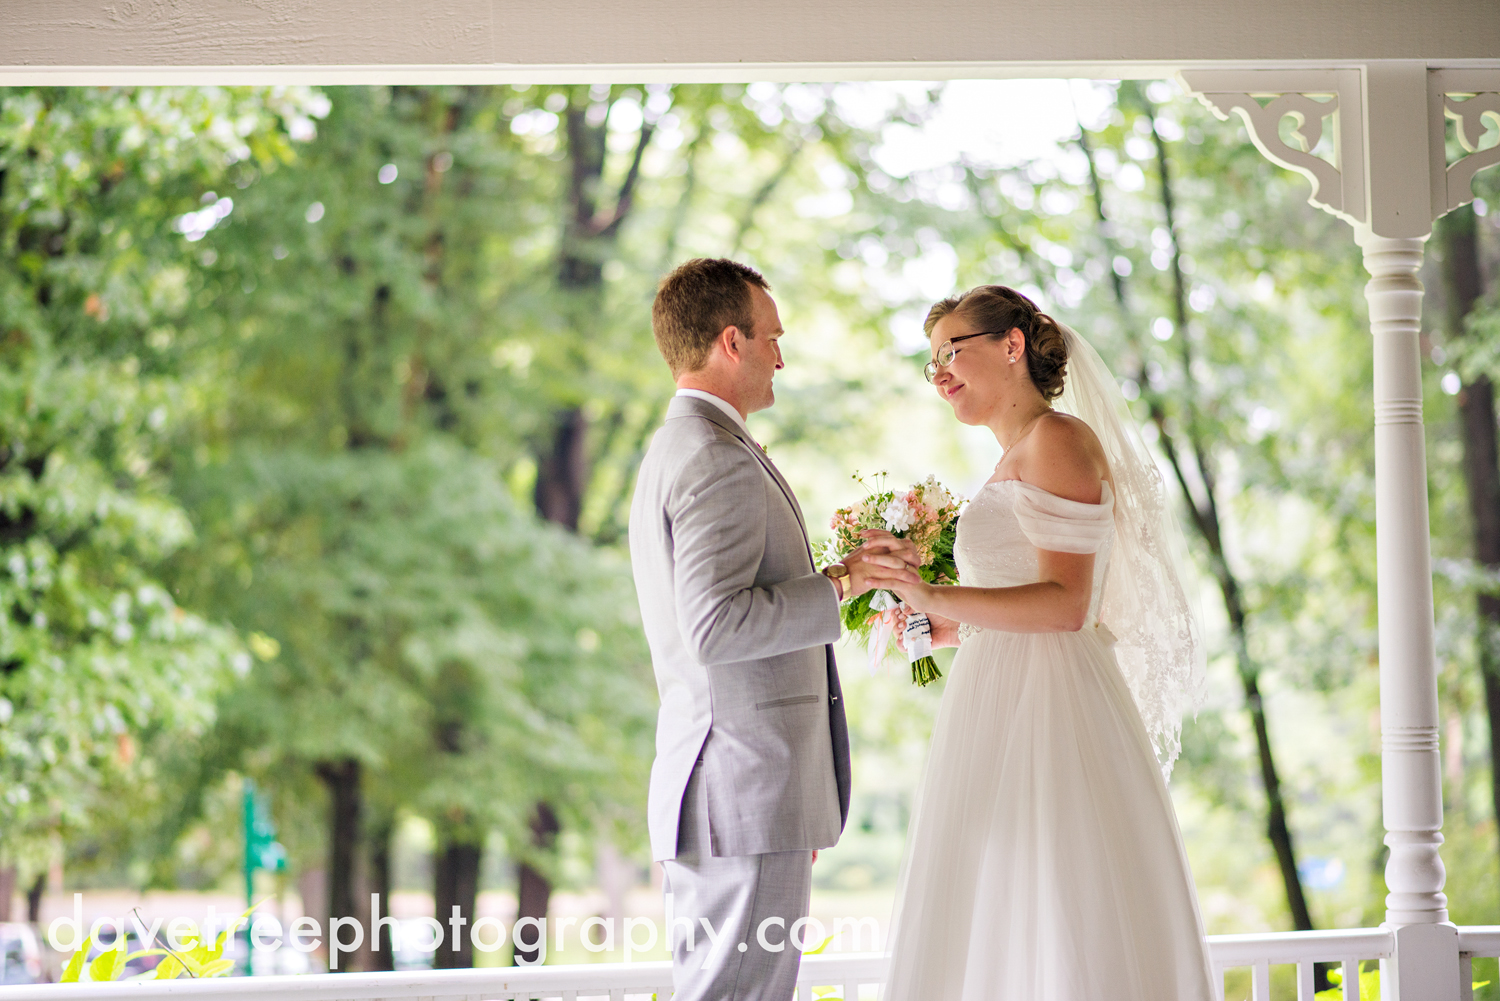 grand_haven_wedding_photographer_weaver_house_wedding_168.jpg